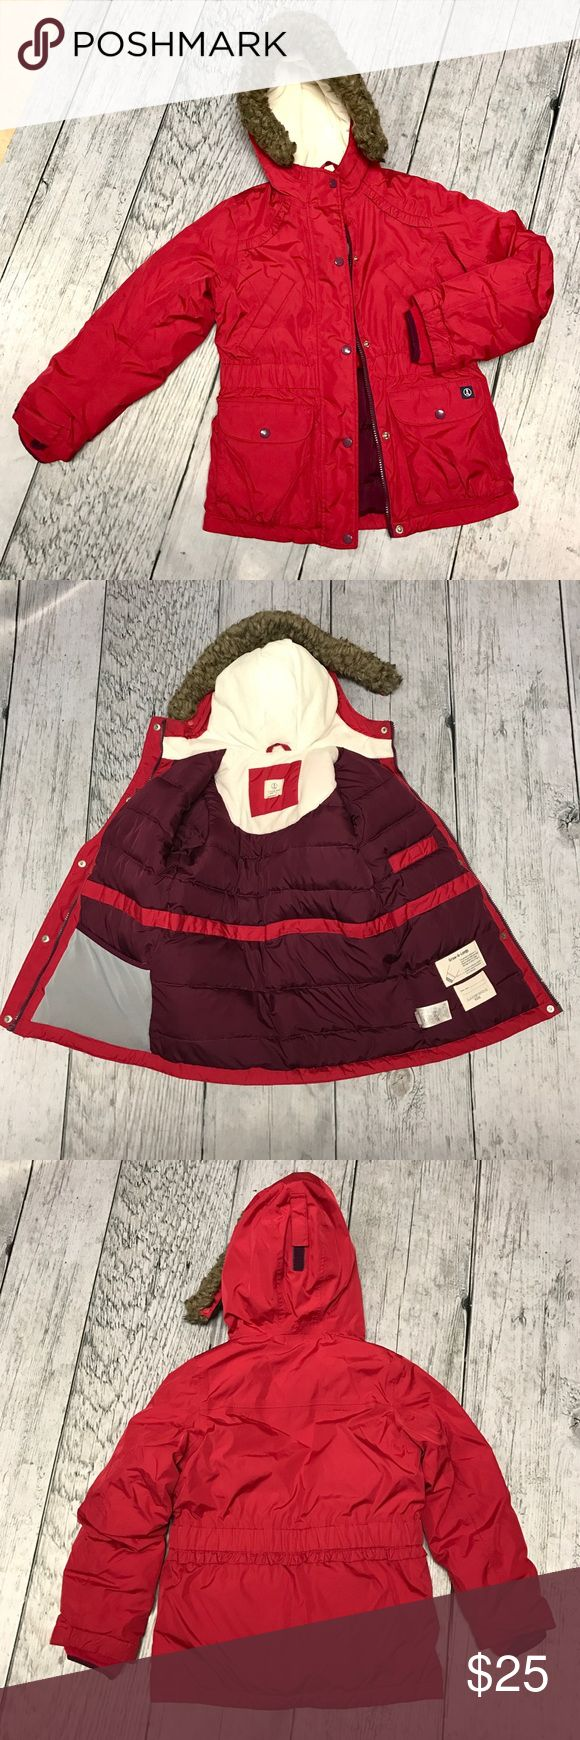 Lands End kids winter coat size 7-8 (girls) pink Lands End kids winter coat size 7-8 (girls) pink. Excellent condition, no stains or rips. Very warm coat and Lands End are the best IMO. No trades and price is firm. Lands' End Jackets & Coats Puffers